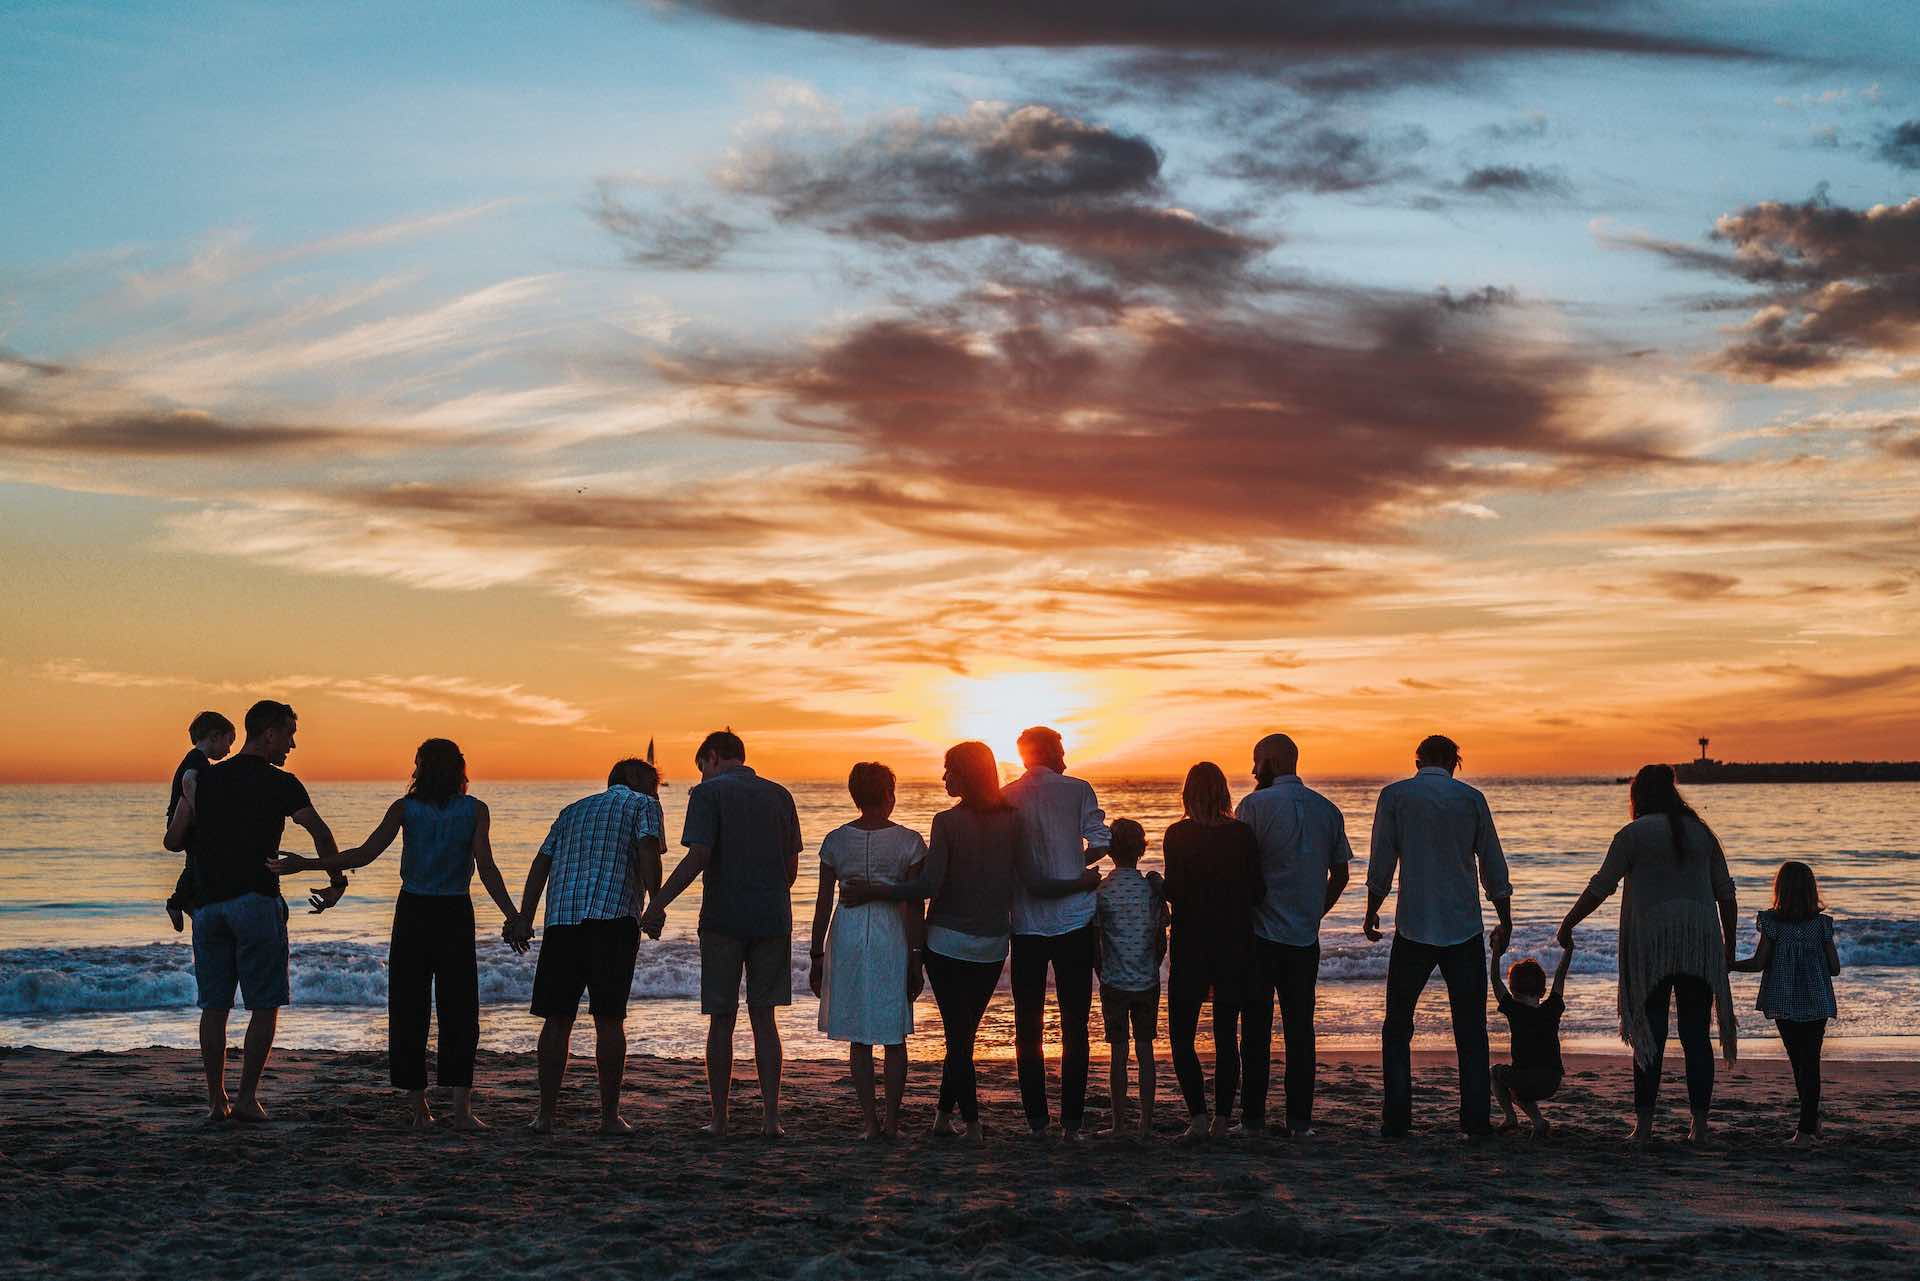 group of people on beach at sunset holding hands